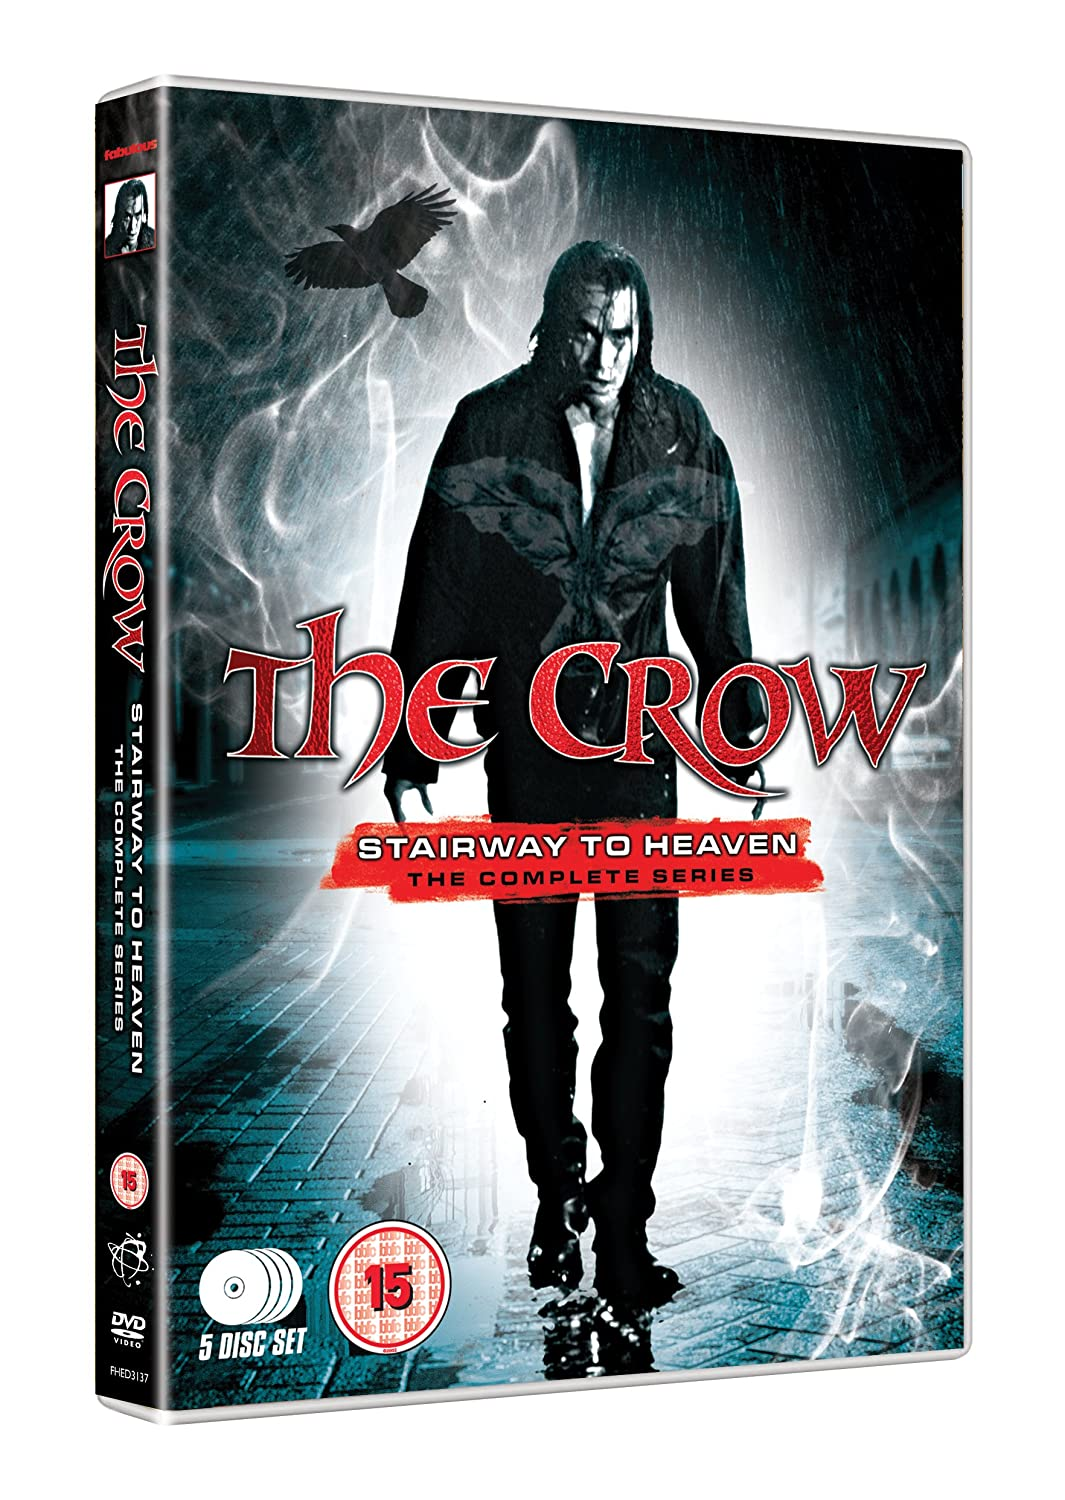 The Crow - Stairway To Heaven: The Complete Series 5 DVD set